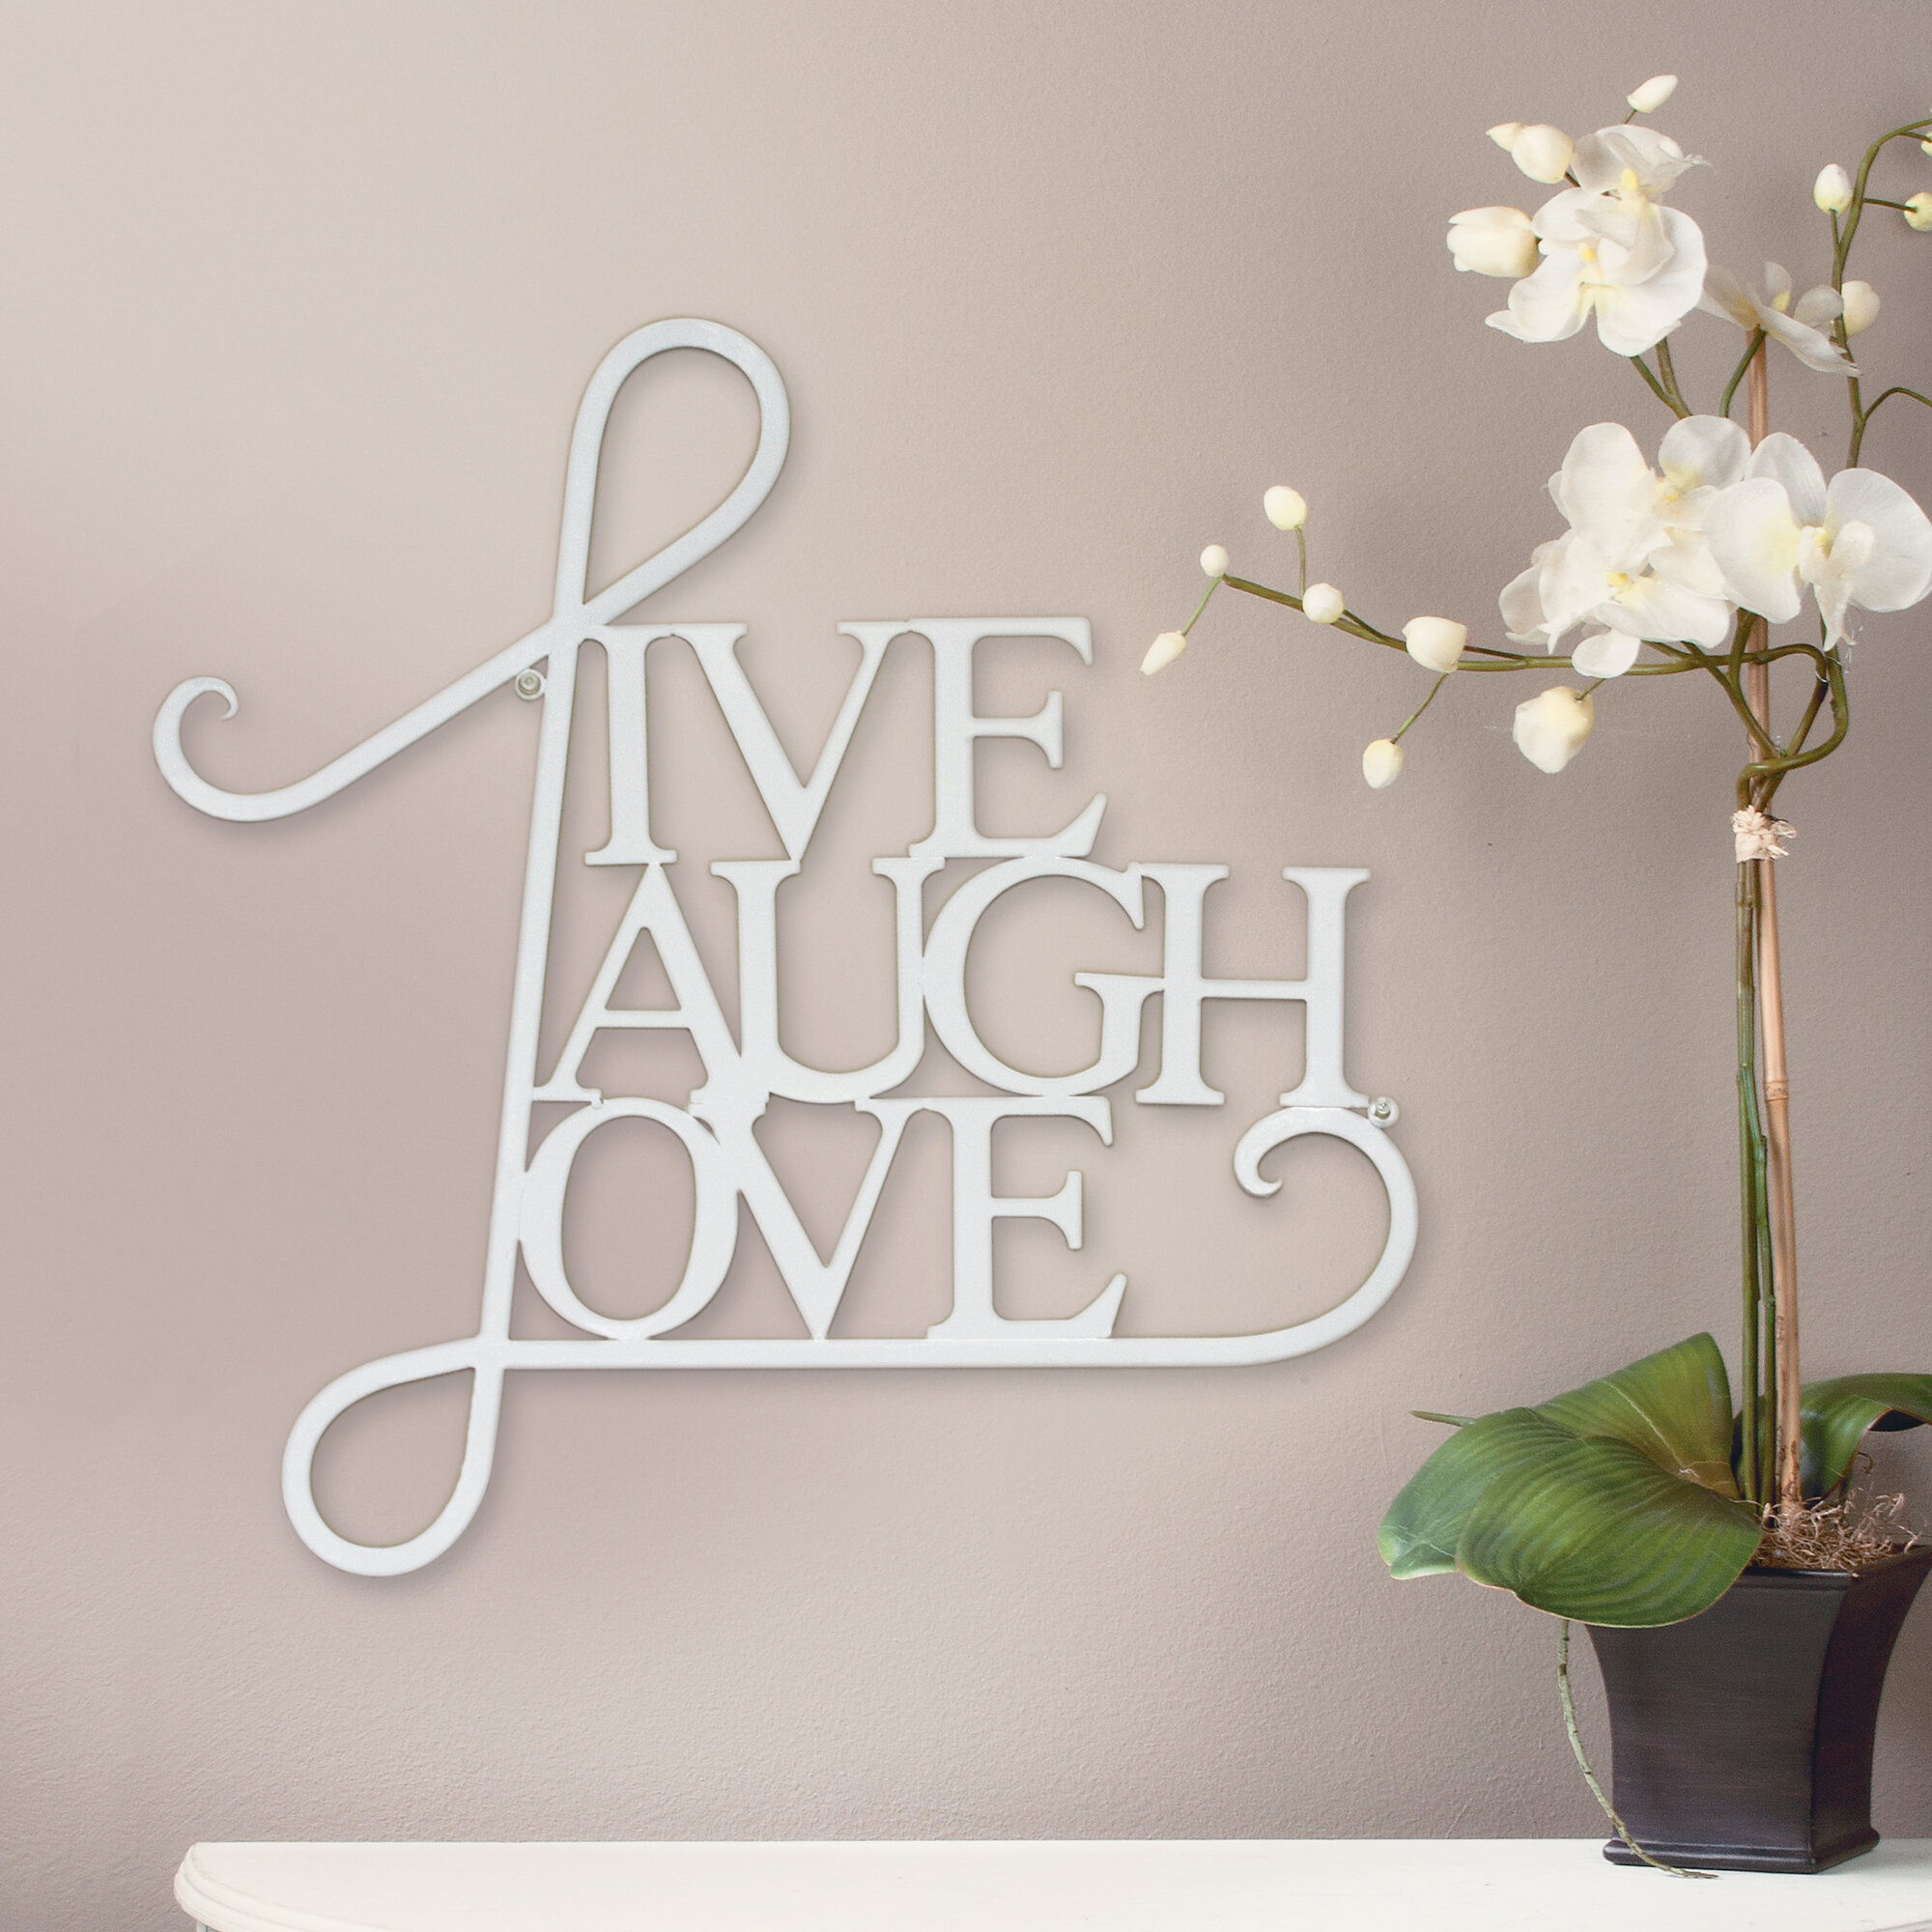 Featured Photo of Live, Laugh, Love Antique Copper Wall Decor